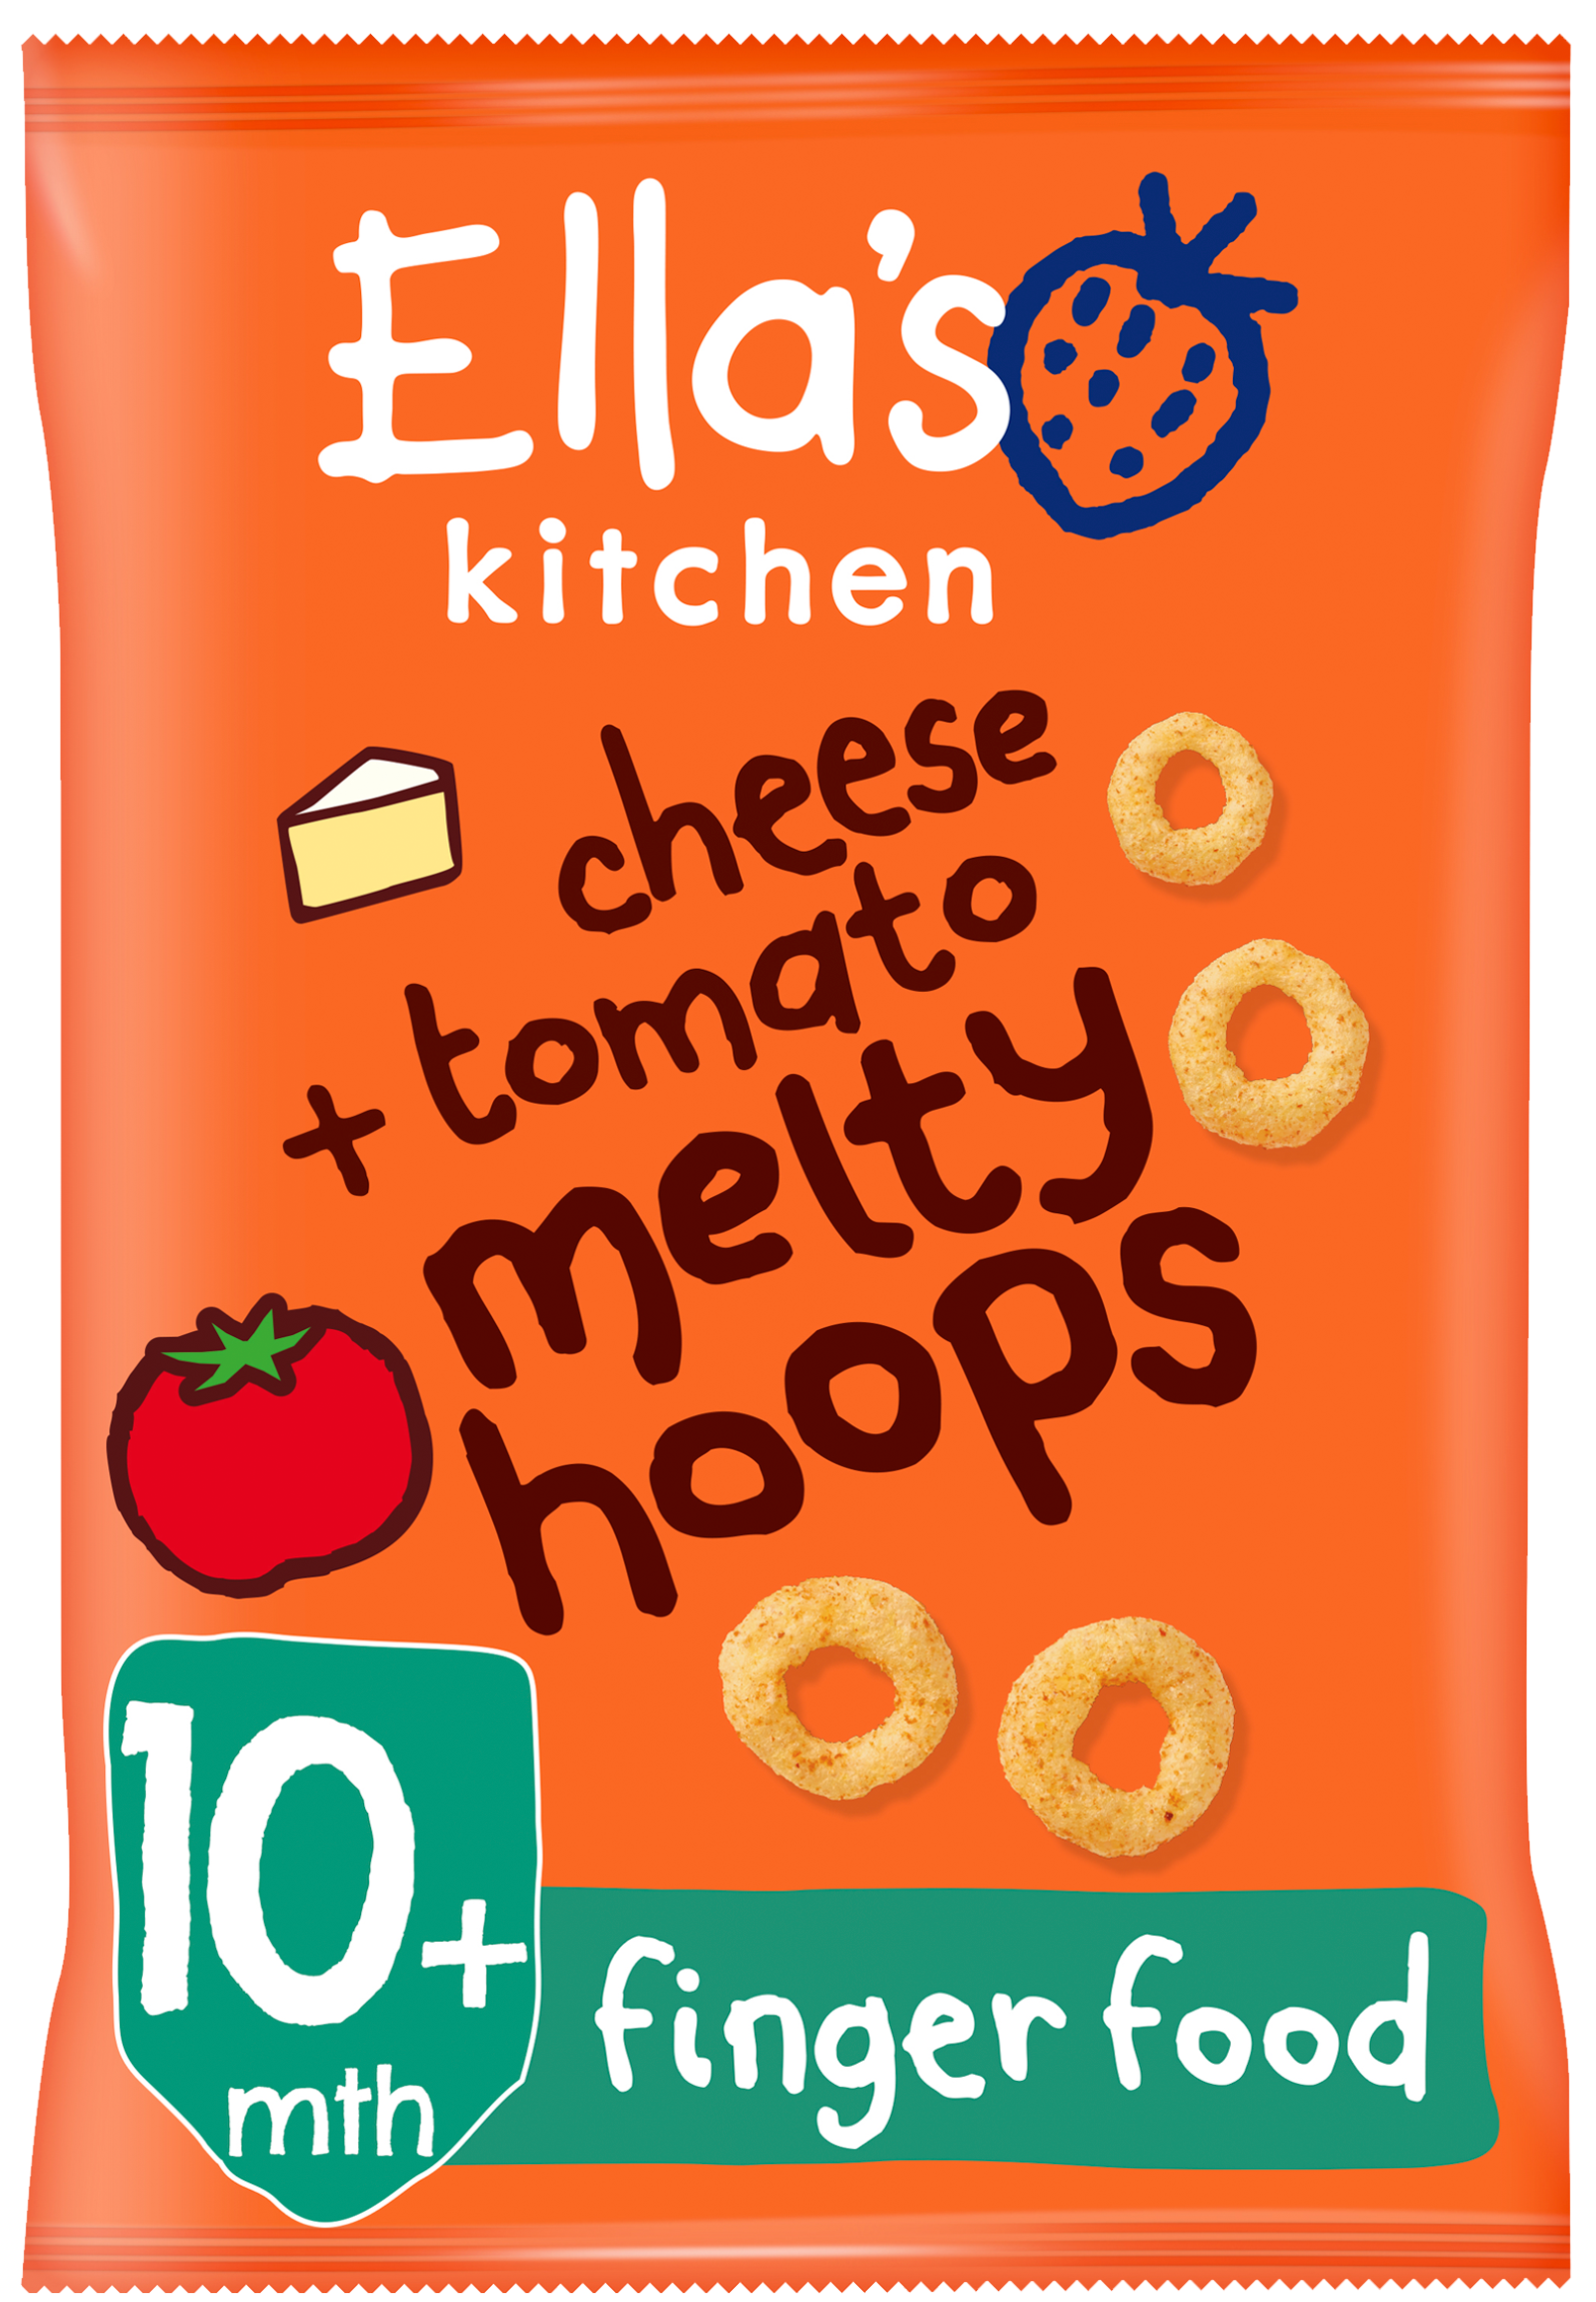 Ellas kitchen melty hoops cheese tomato bag front of pack O